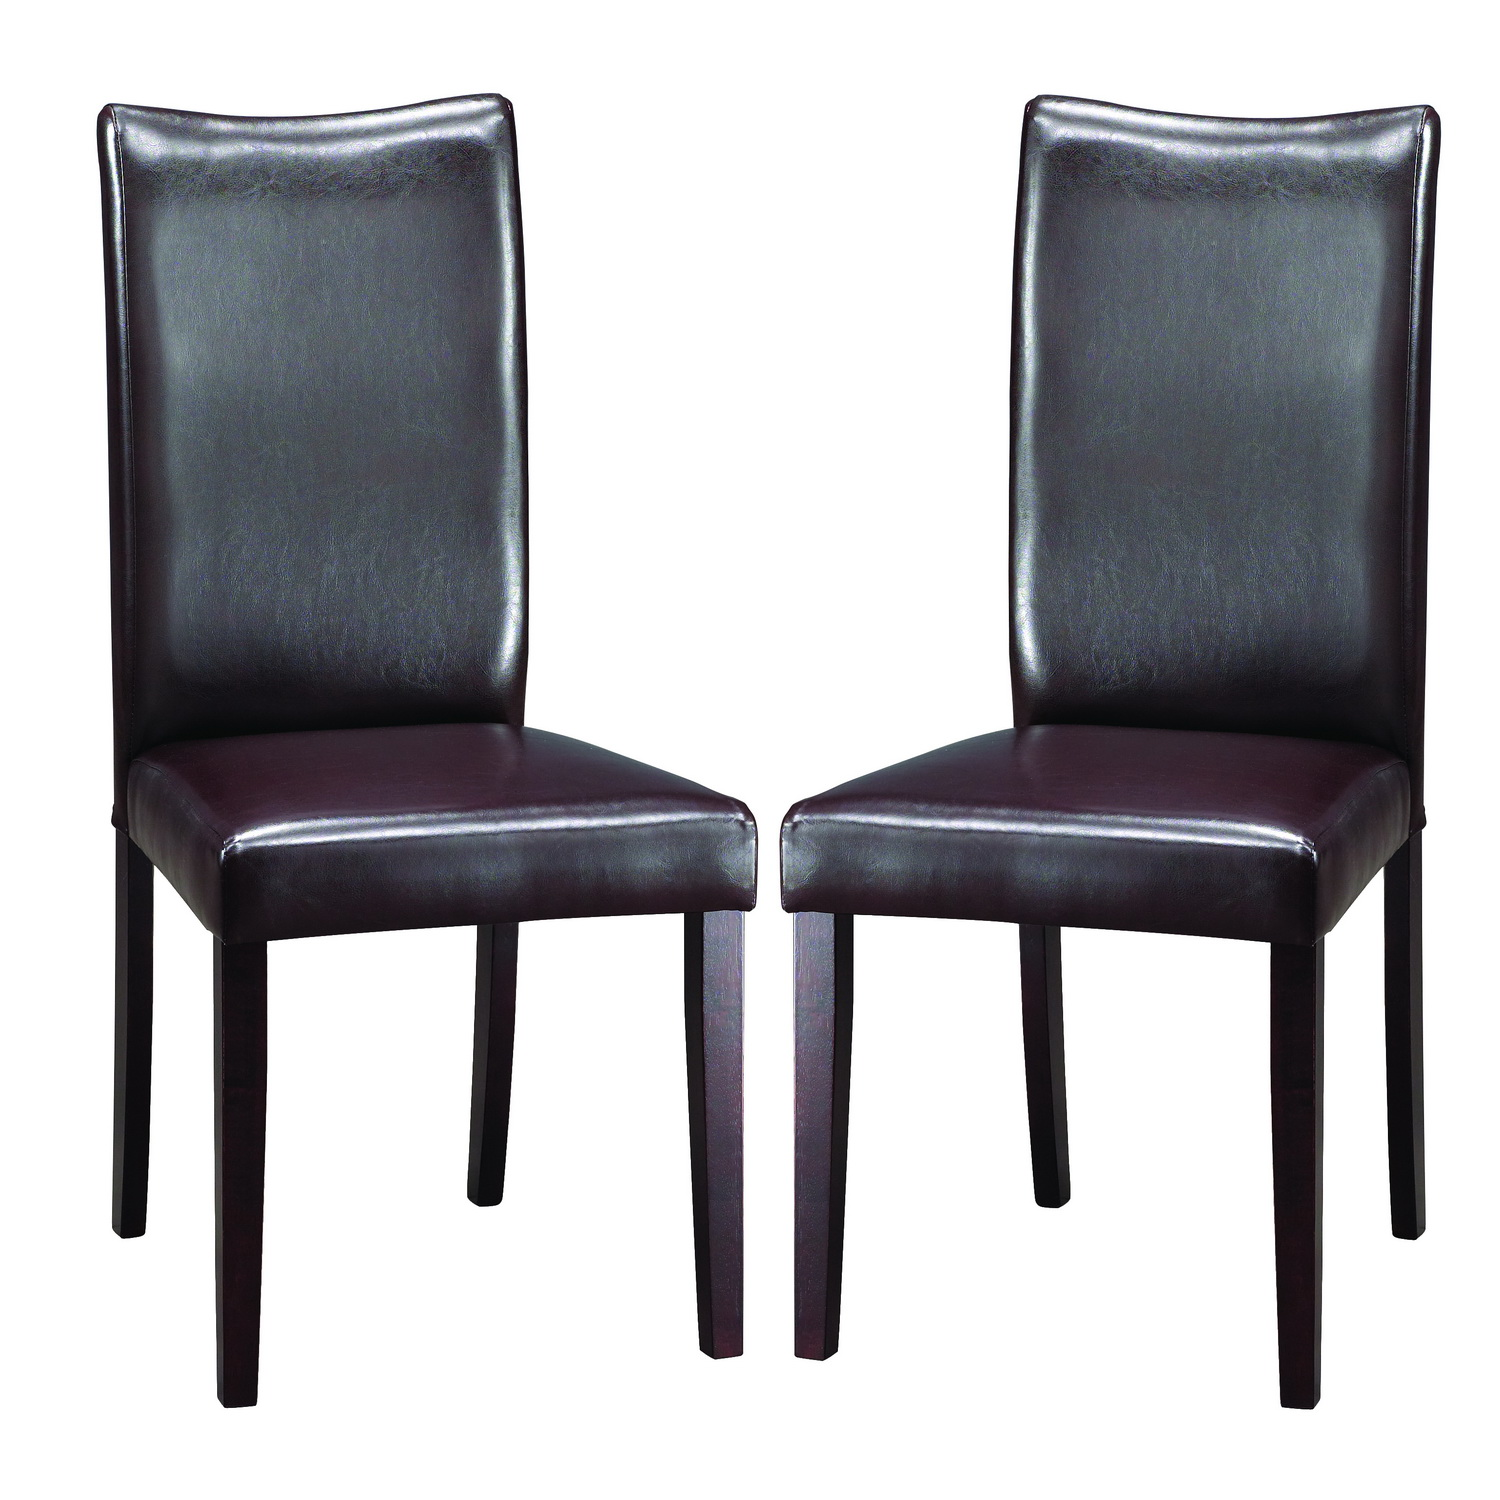 Beautiful light blue leather dining chairs chair pads for Contemporary designer dining chairs